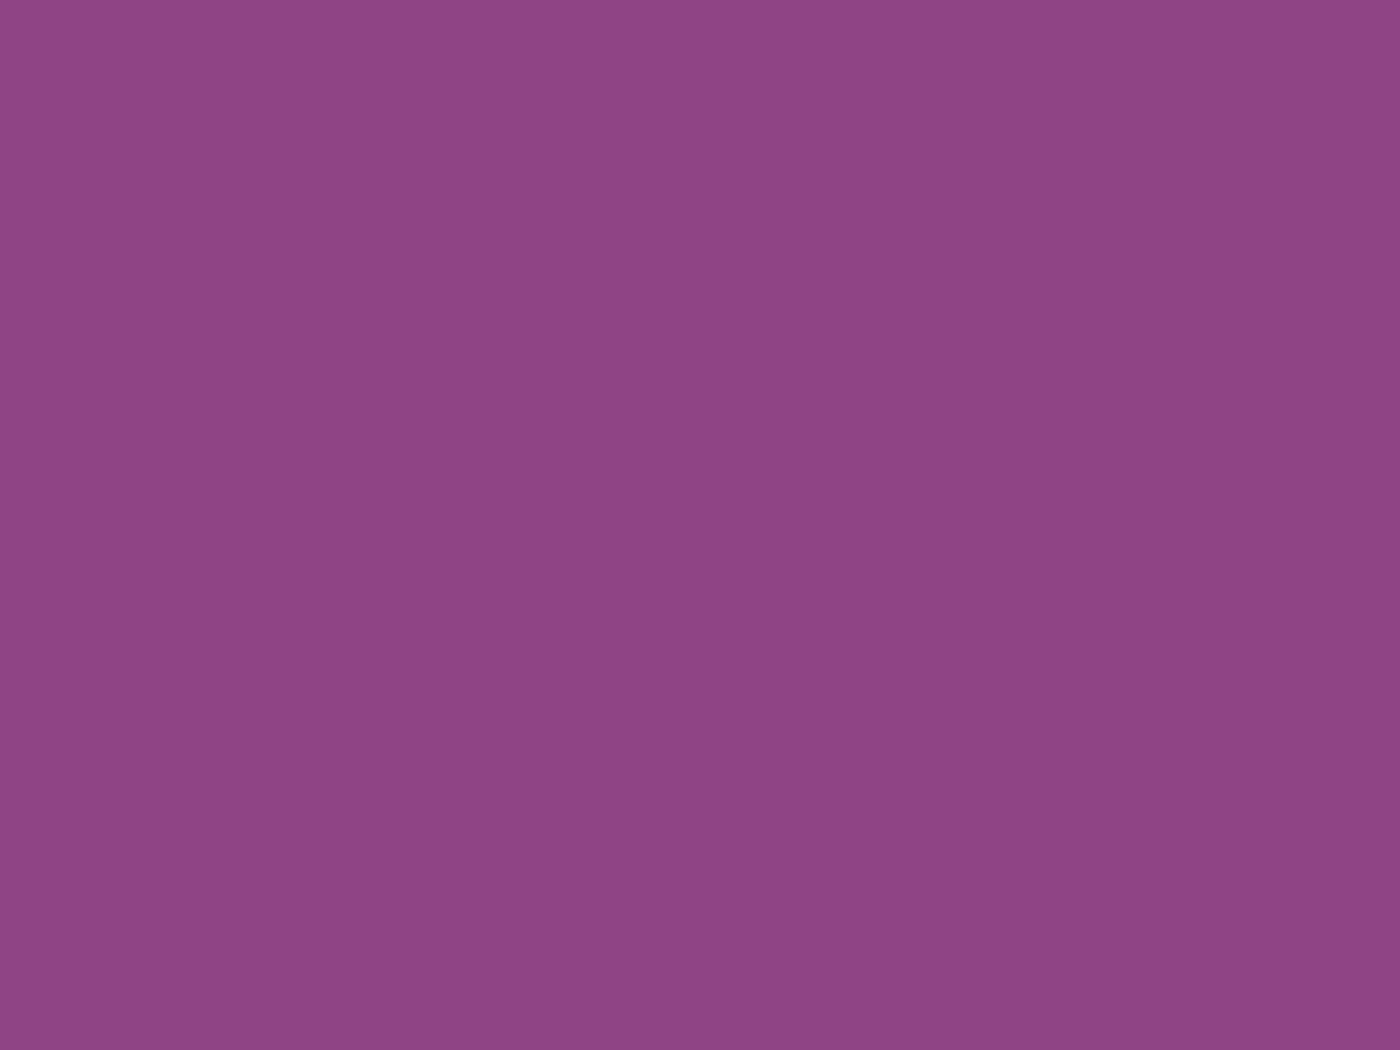 1400x1050 Plum Traditional Solid Color Background